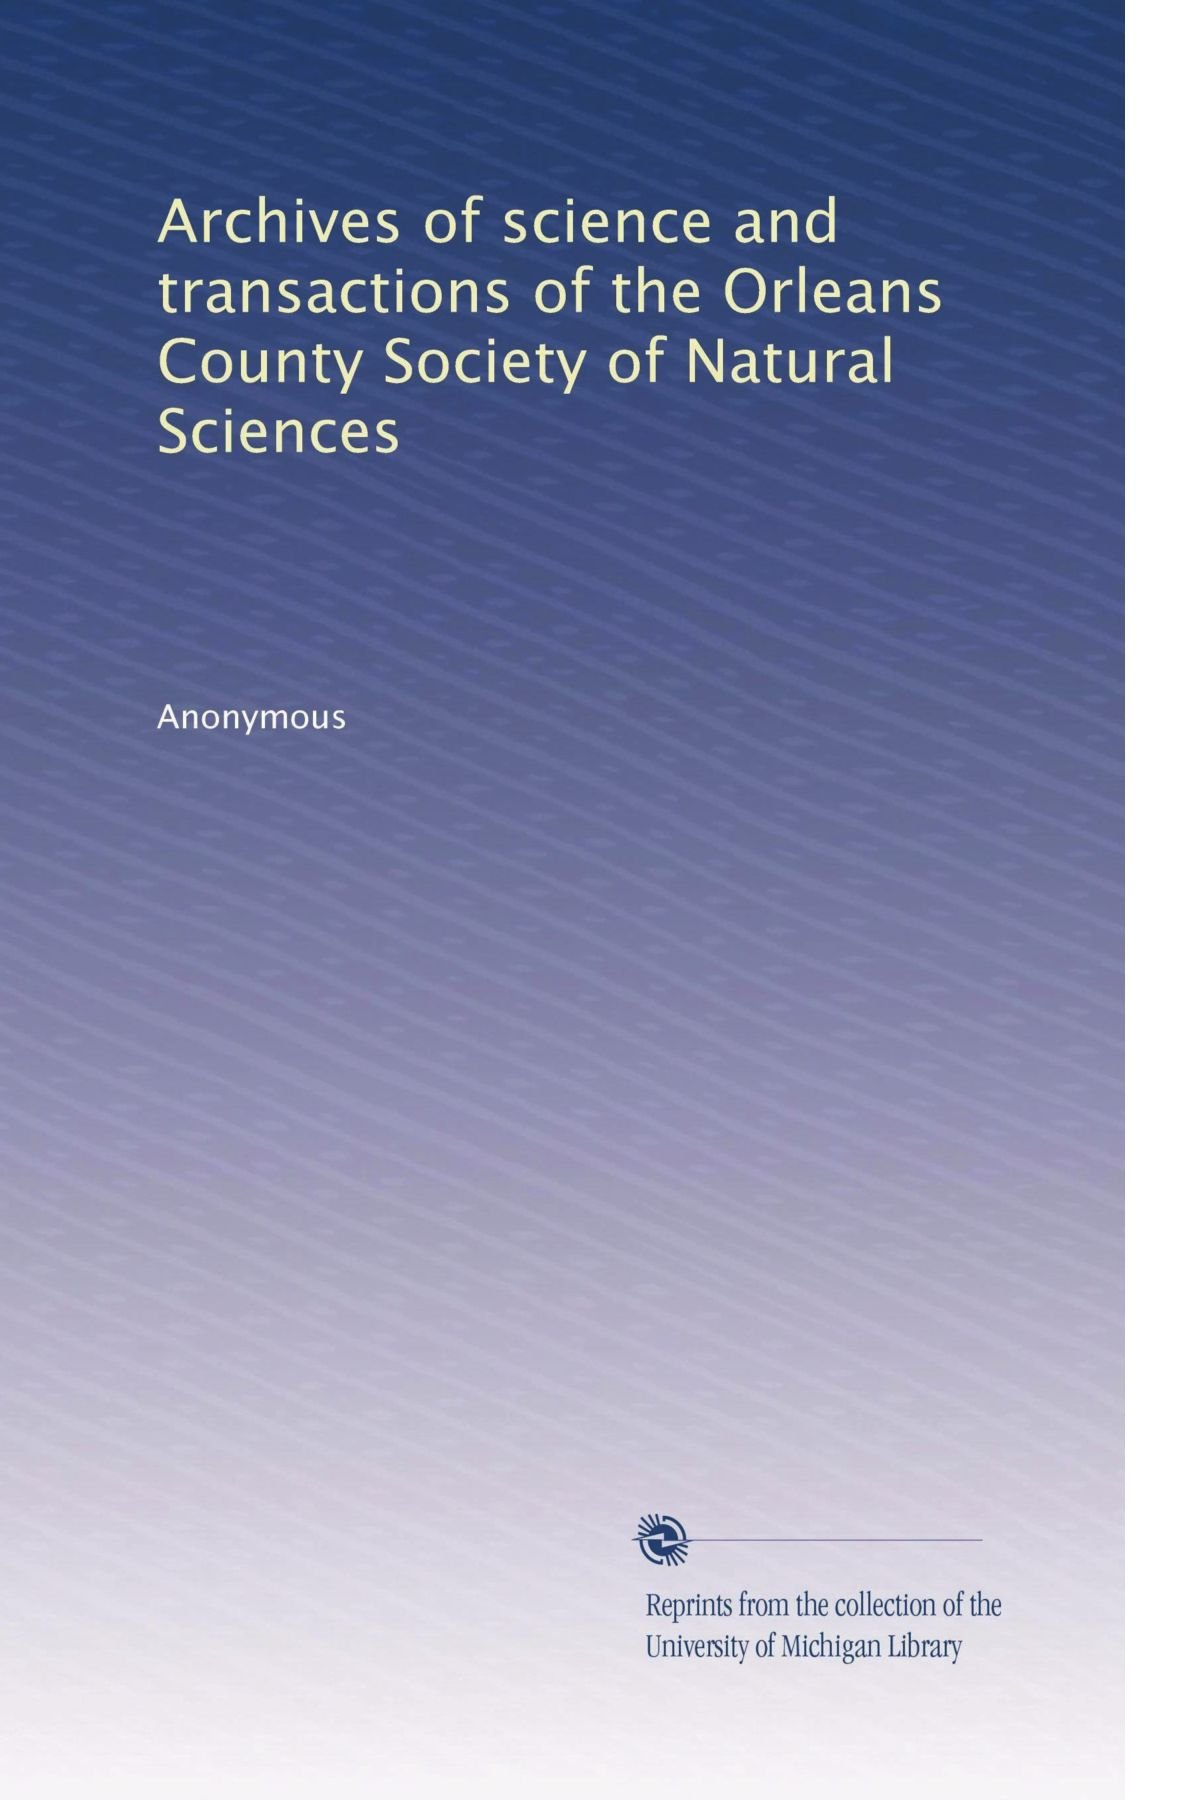 Download Archives of science and transactions of the Orleans County Society of Natural Sciences pdf